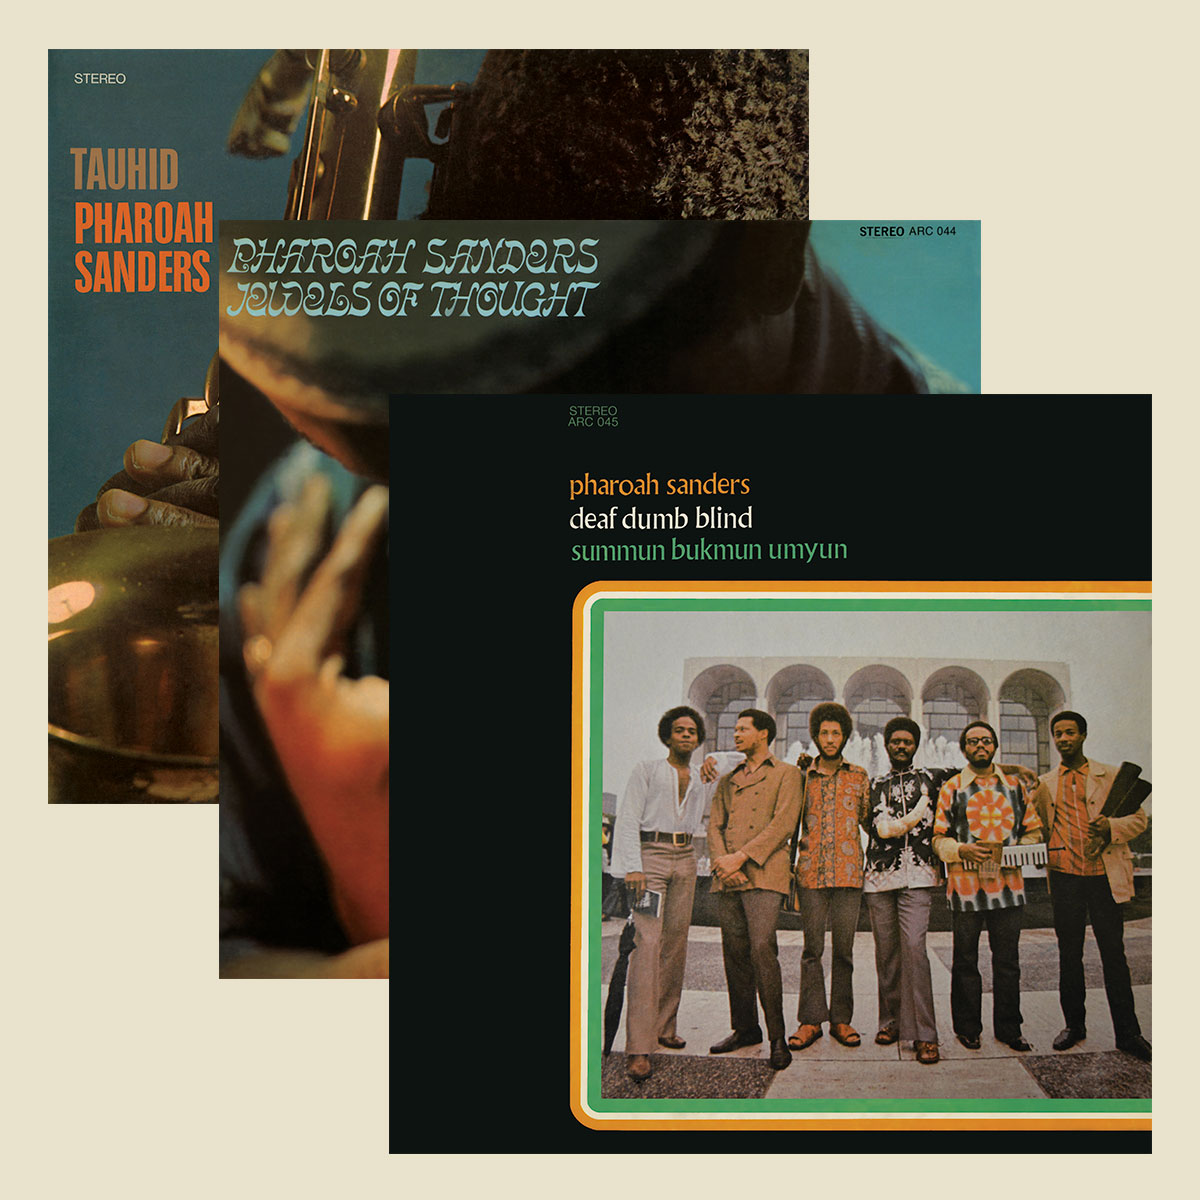 Pharoah Sanders reissues